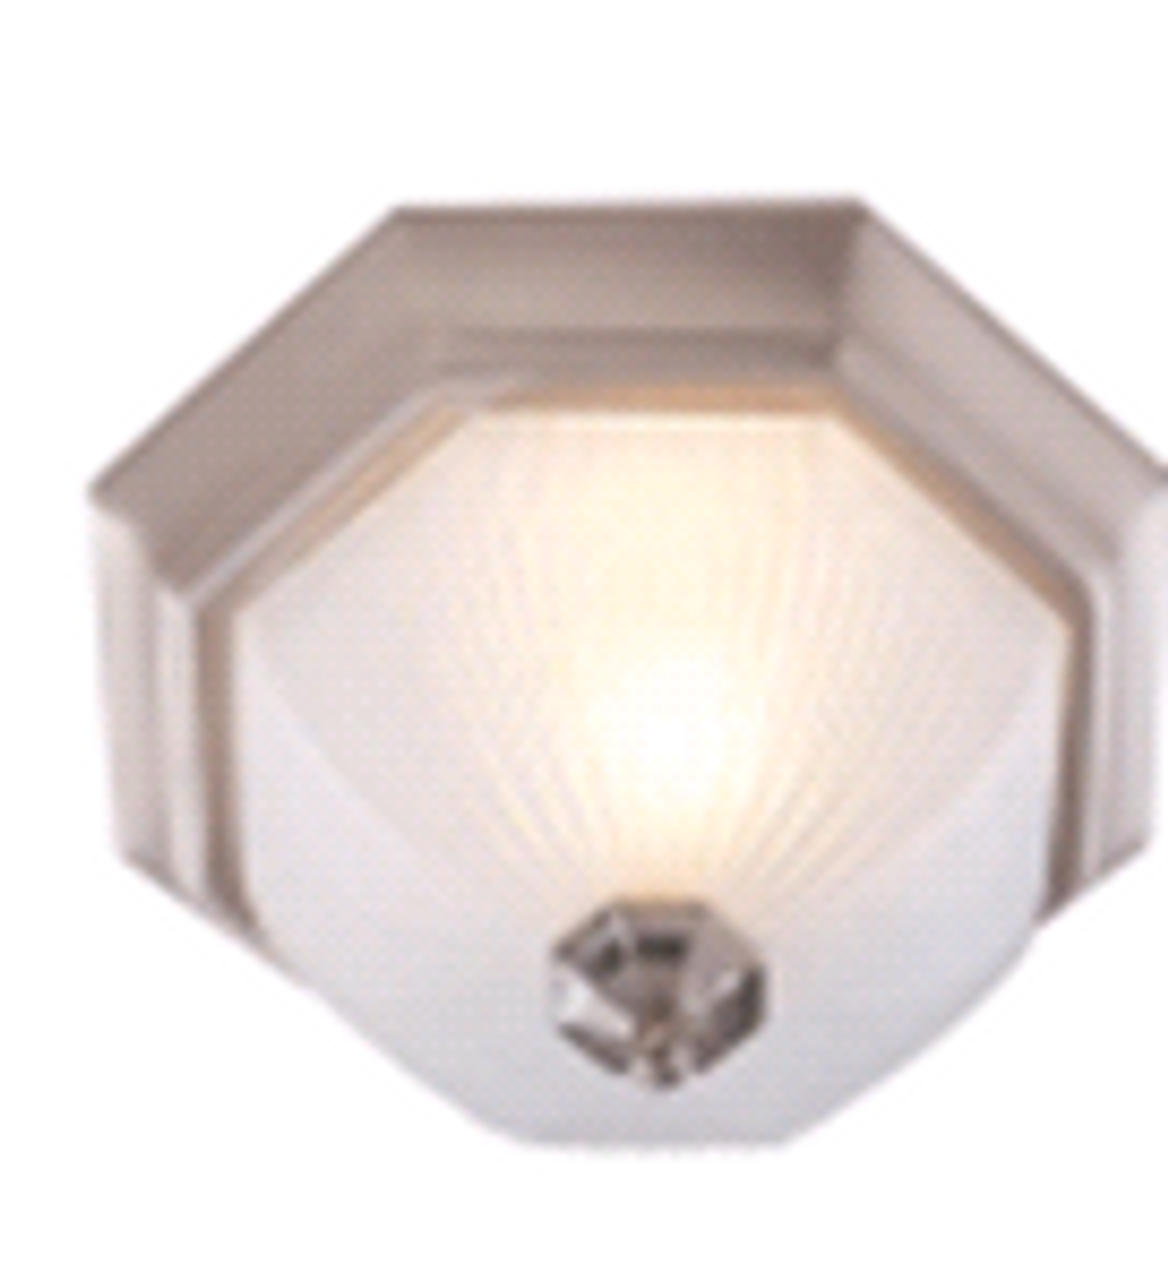 Monument   Decorative Ceiling Fixture   Brushed Nickel   076335617398